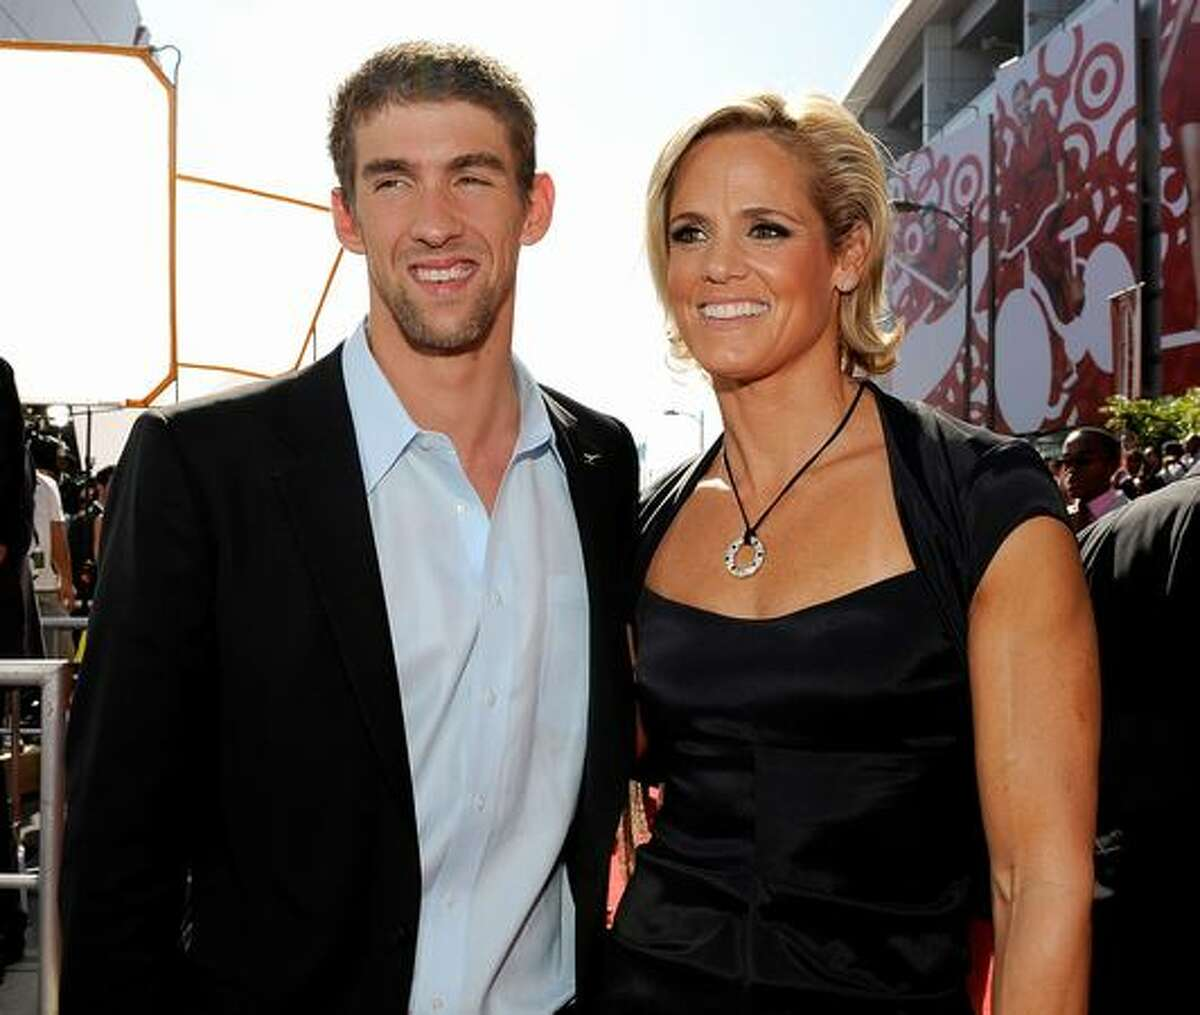 Olympic swimmers Michael Phelps and Dara Torres arrive. (Photo by Kevork Djansezian/Getty Images for ESPY